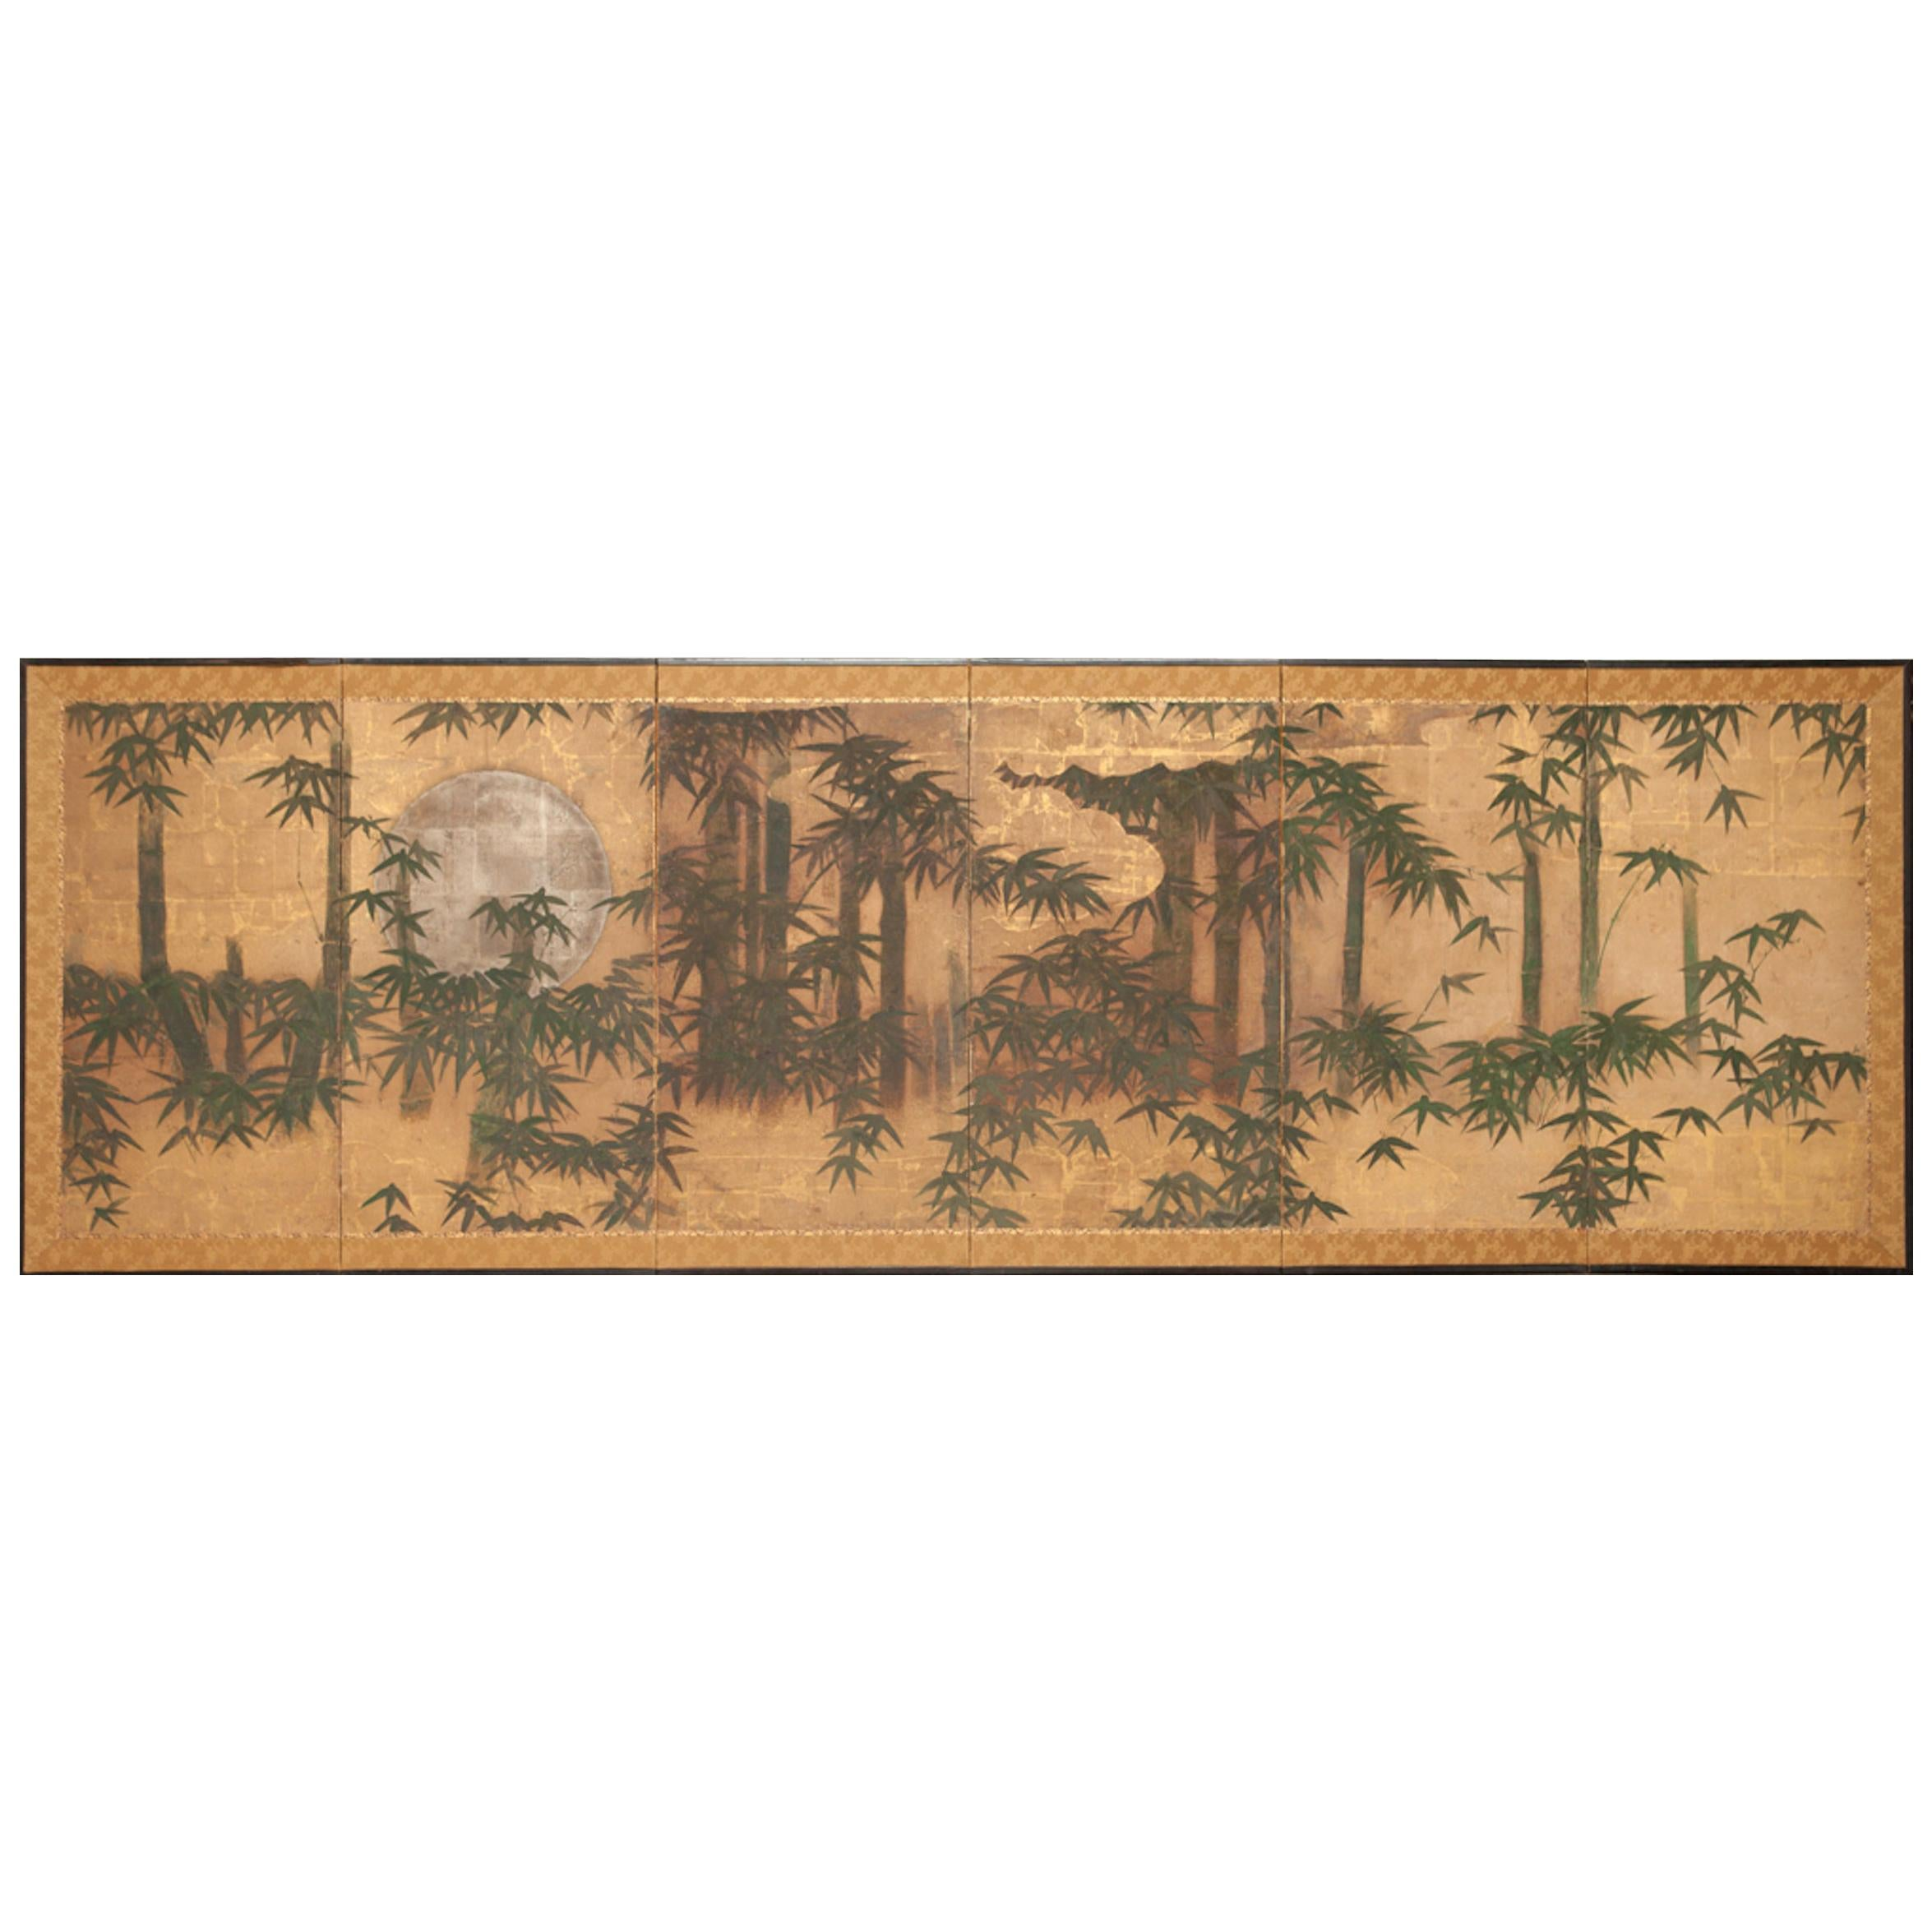 Japanese Six-Panel Screen, Silver Moon and Bamboo on Gold